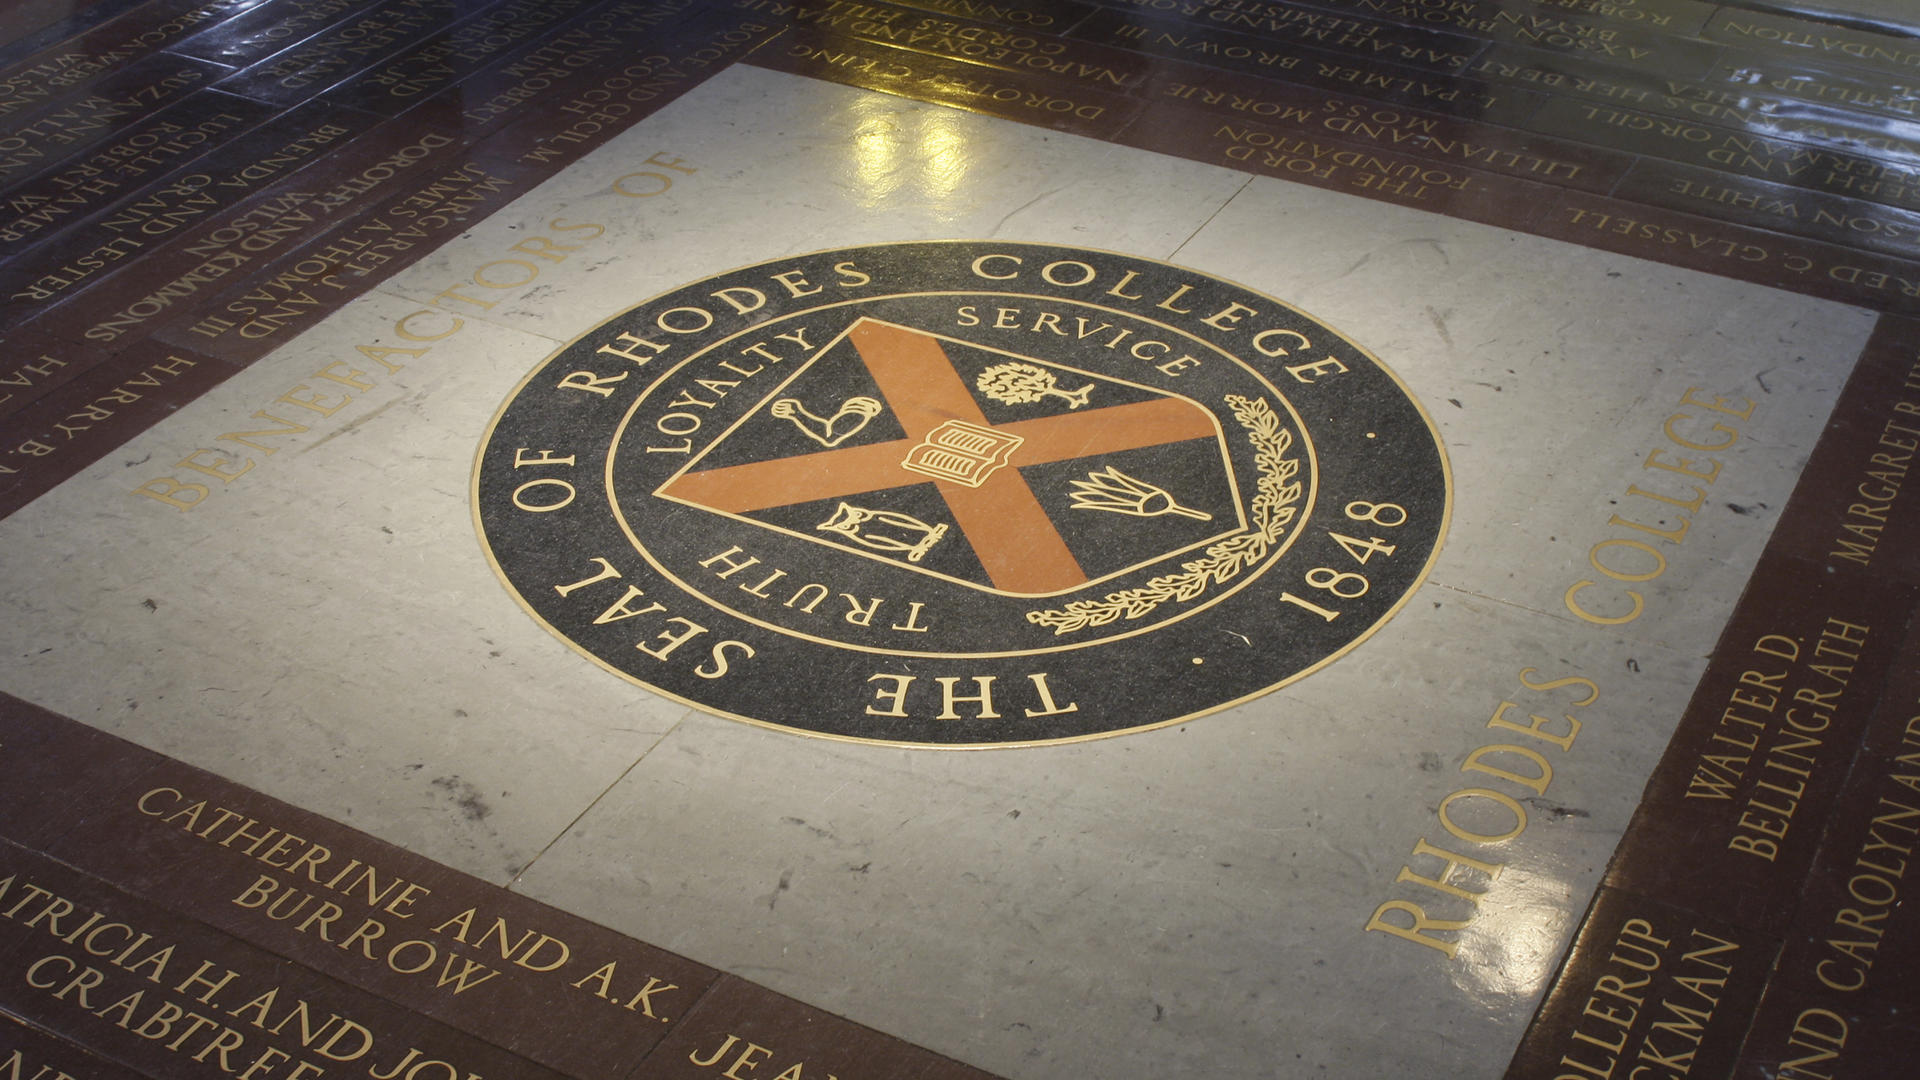 The seal of Rhodes College inlayed in the floor of Palmer Hall. If a student walk across it, the legend says that they will ever graduate